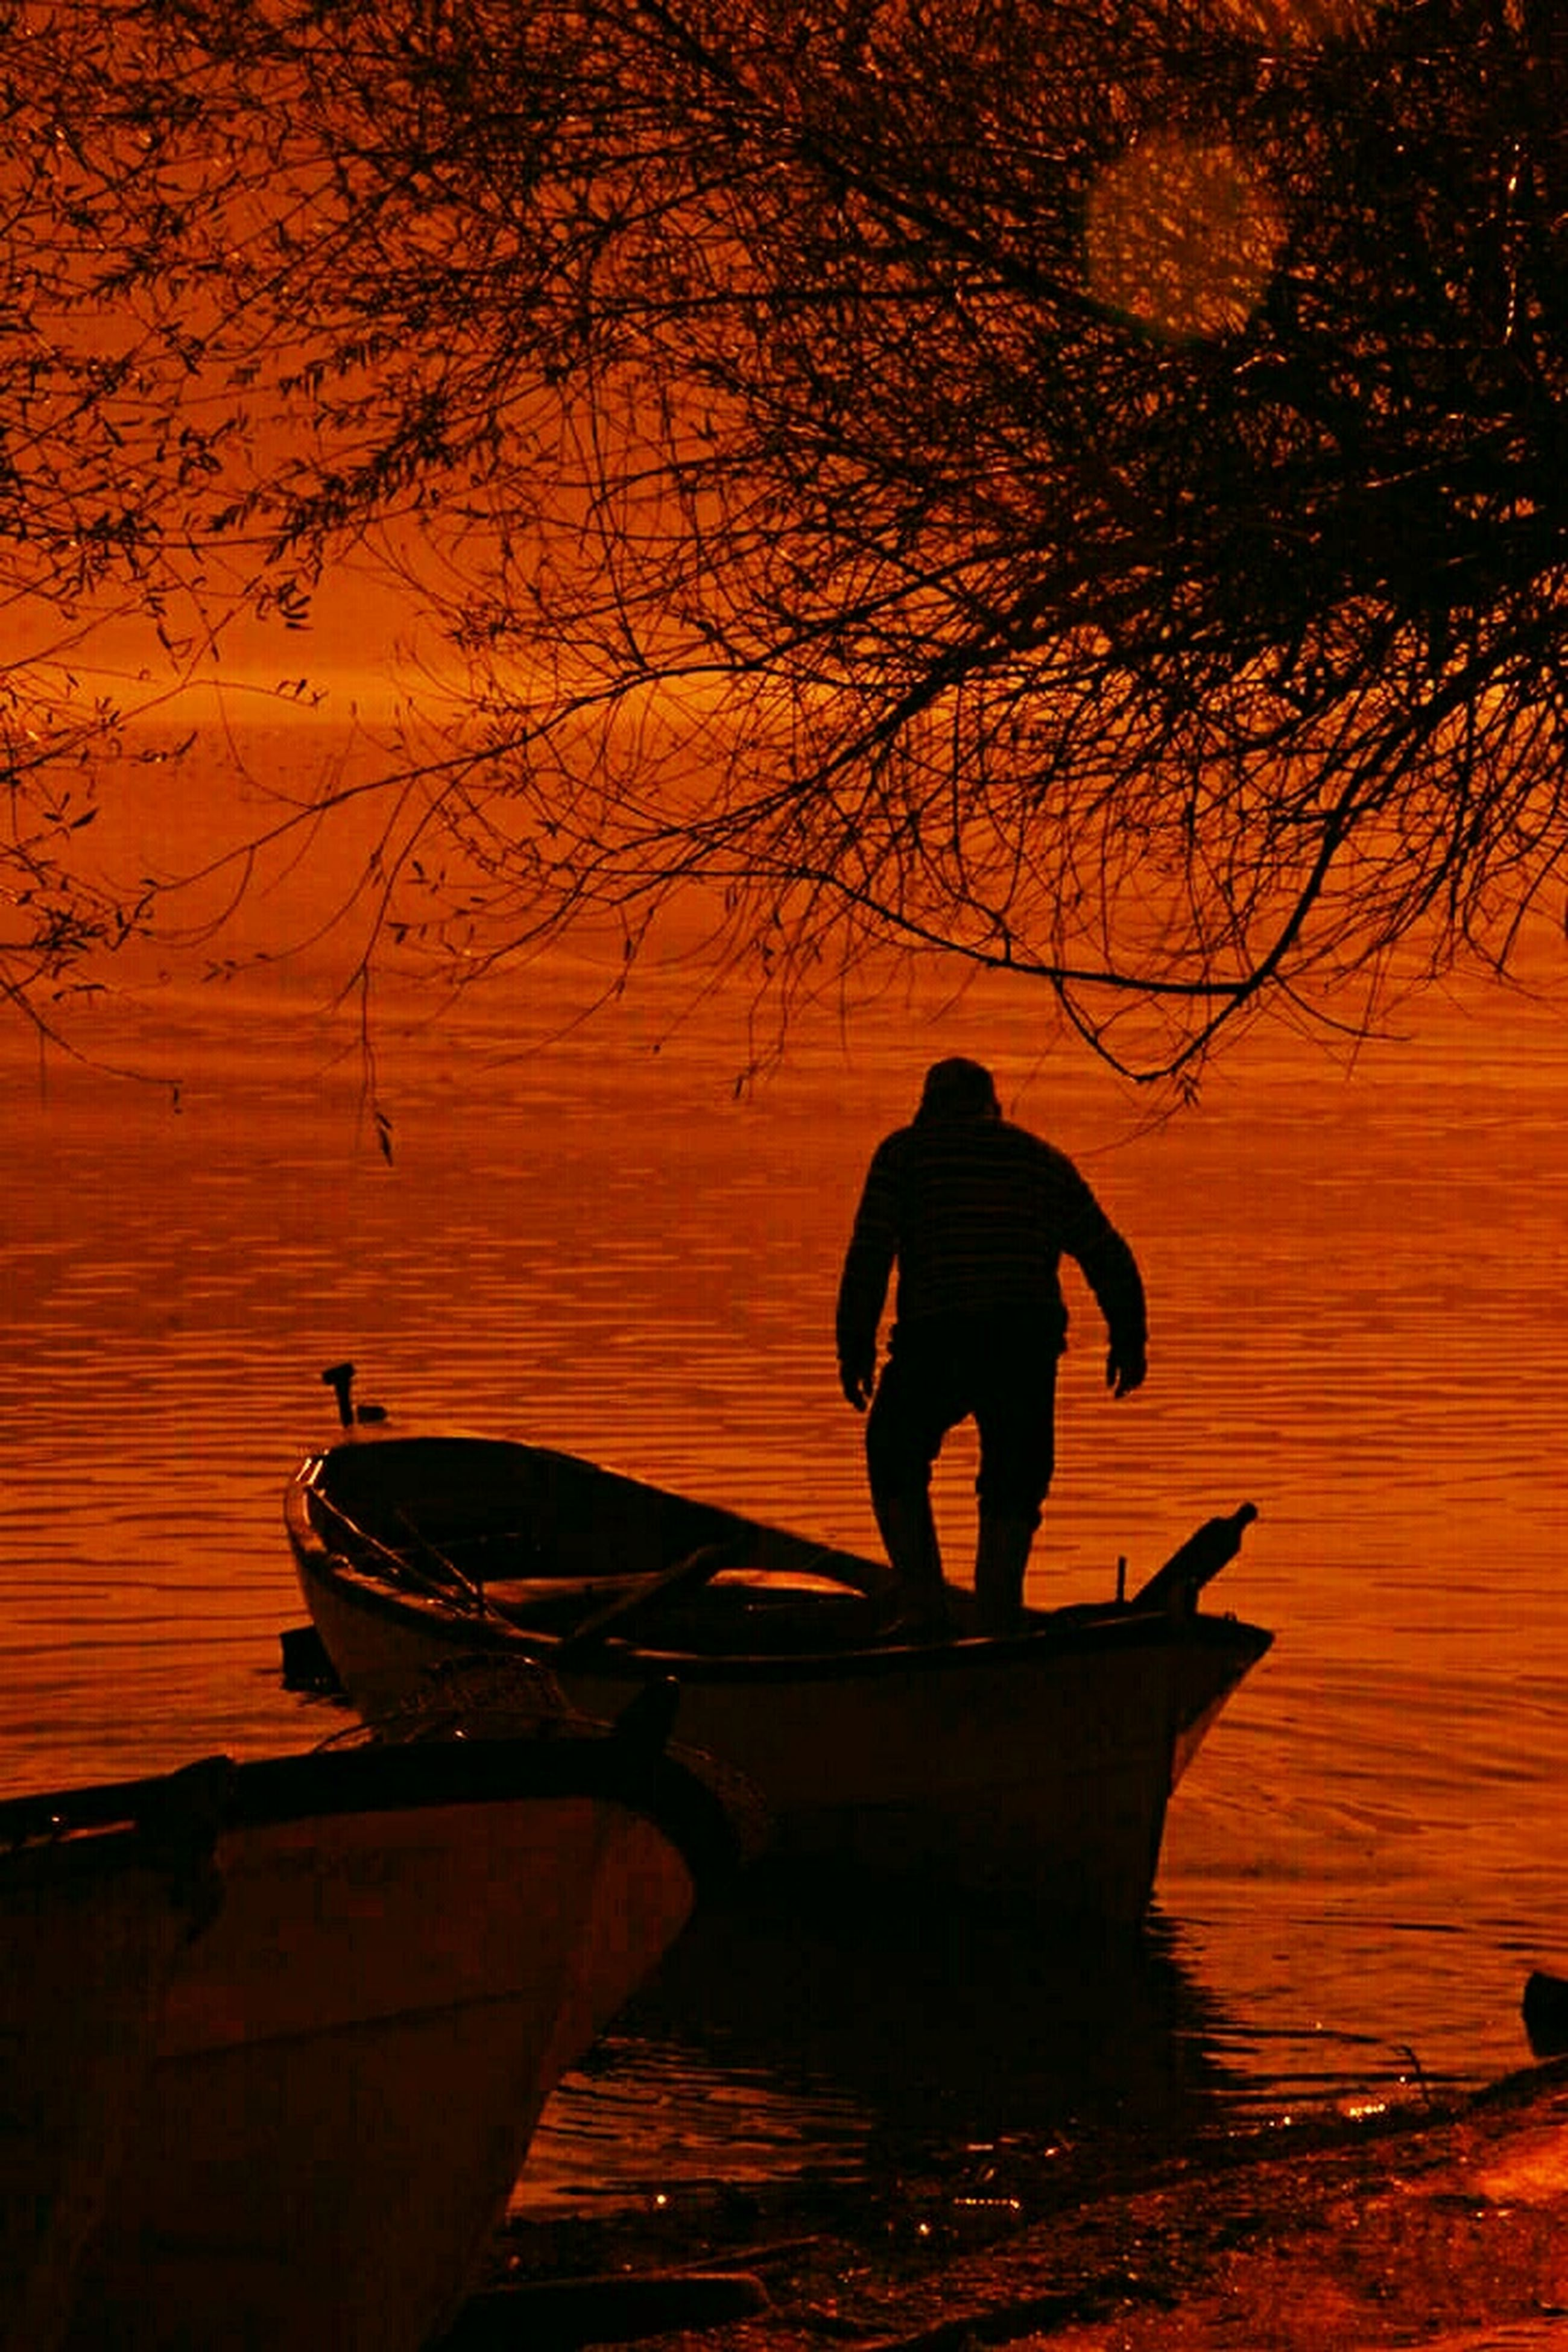 sunset, water, silhouette, orange color, full length, lifestyles, leisure activity, men, tranquility, rear view, reflection, nature, tranquil scene, standing, beauty in nature, transportation, scenics, person